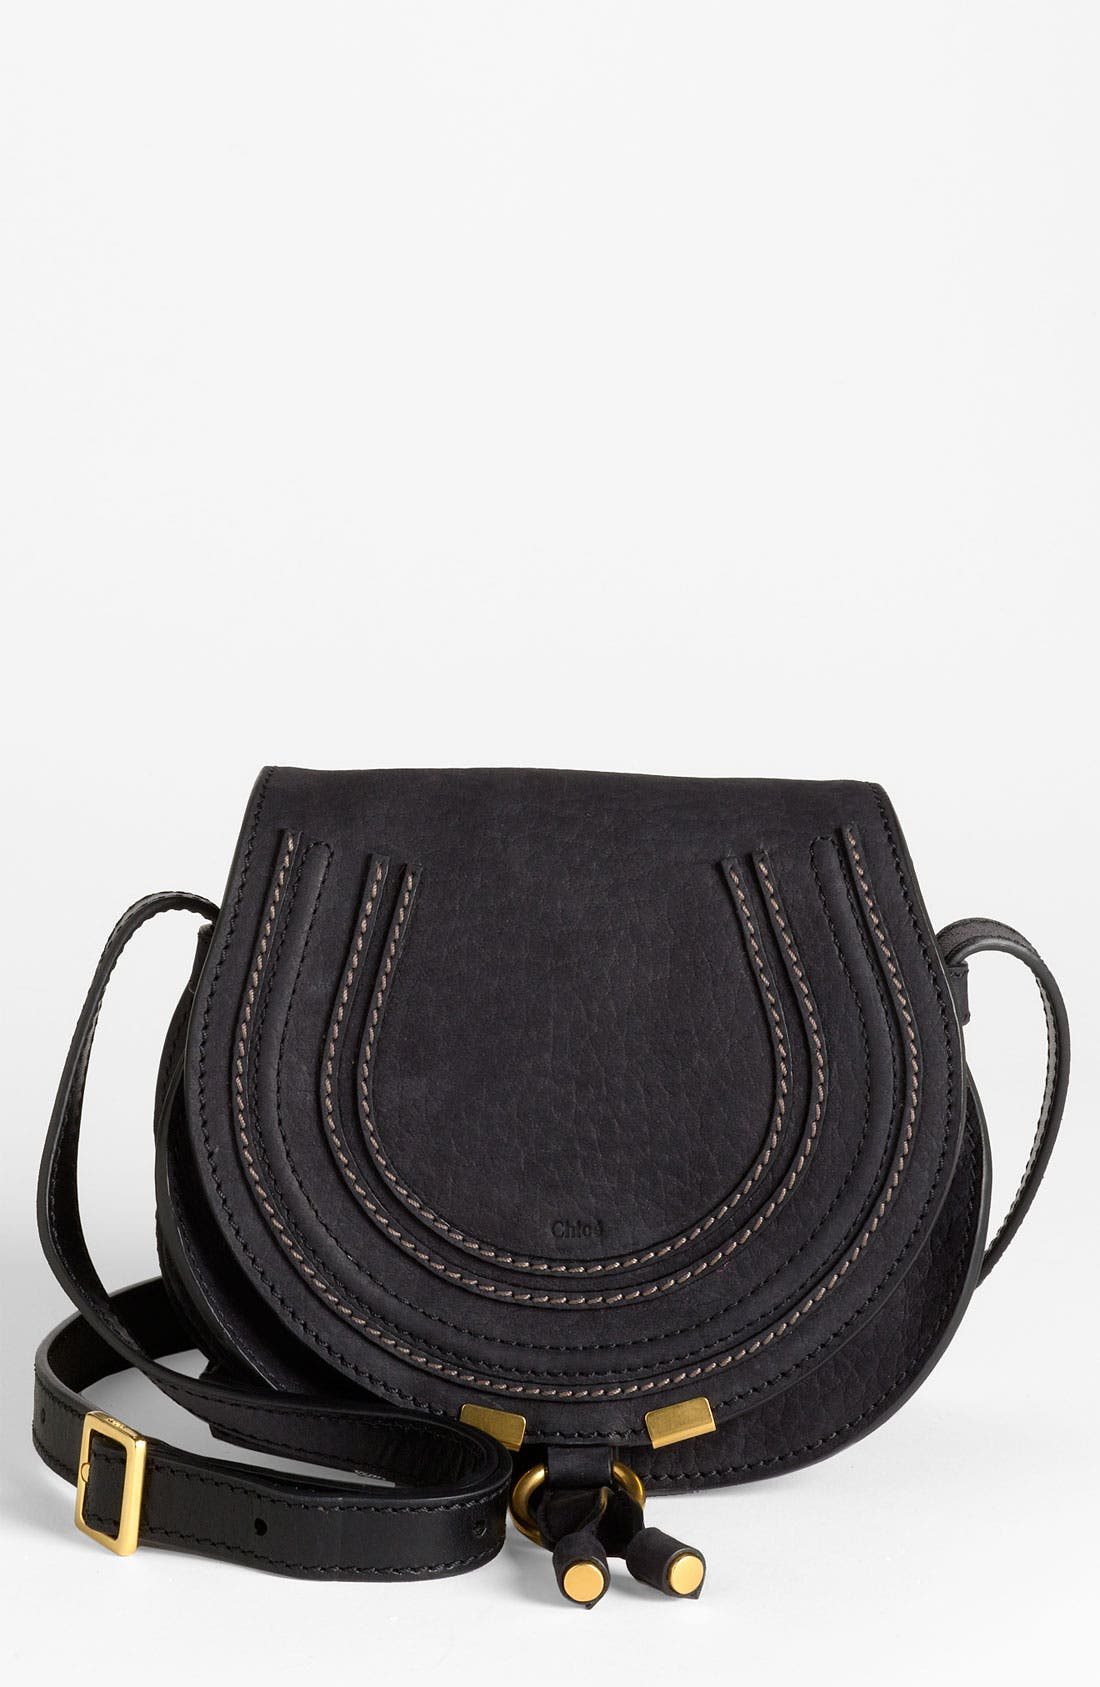 Main Image - Chloé 'Marcie - Small' Crossbody Bag